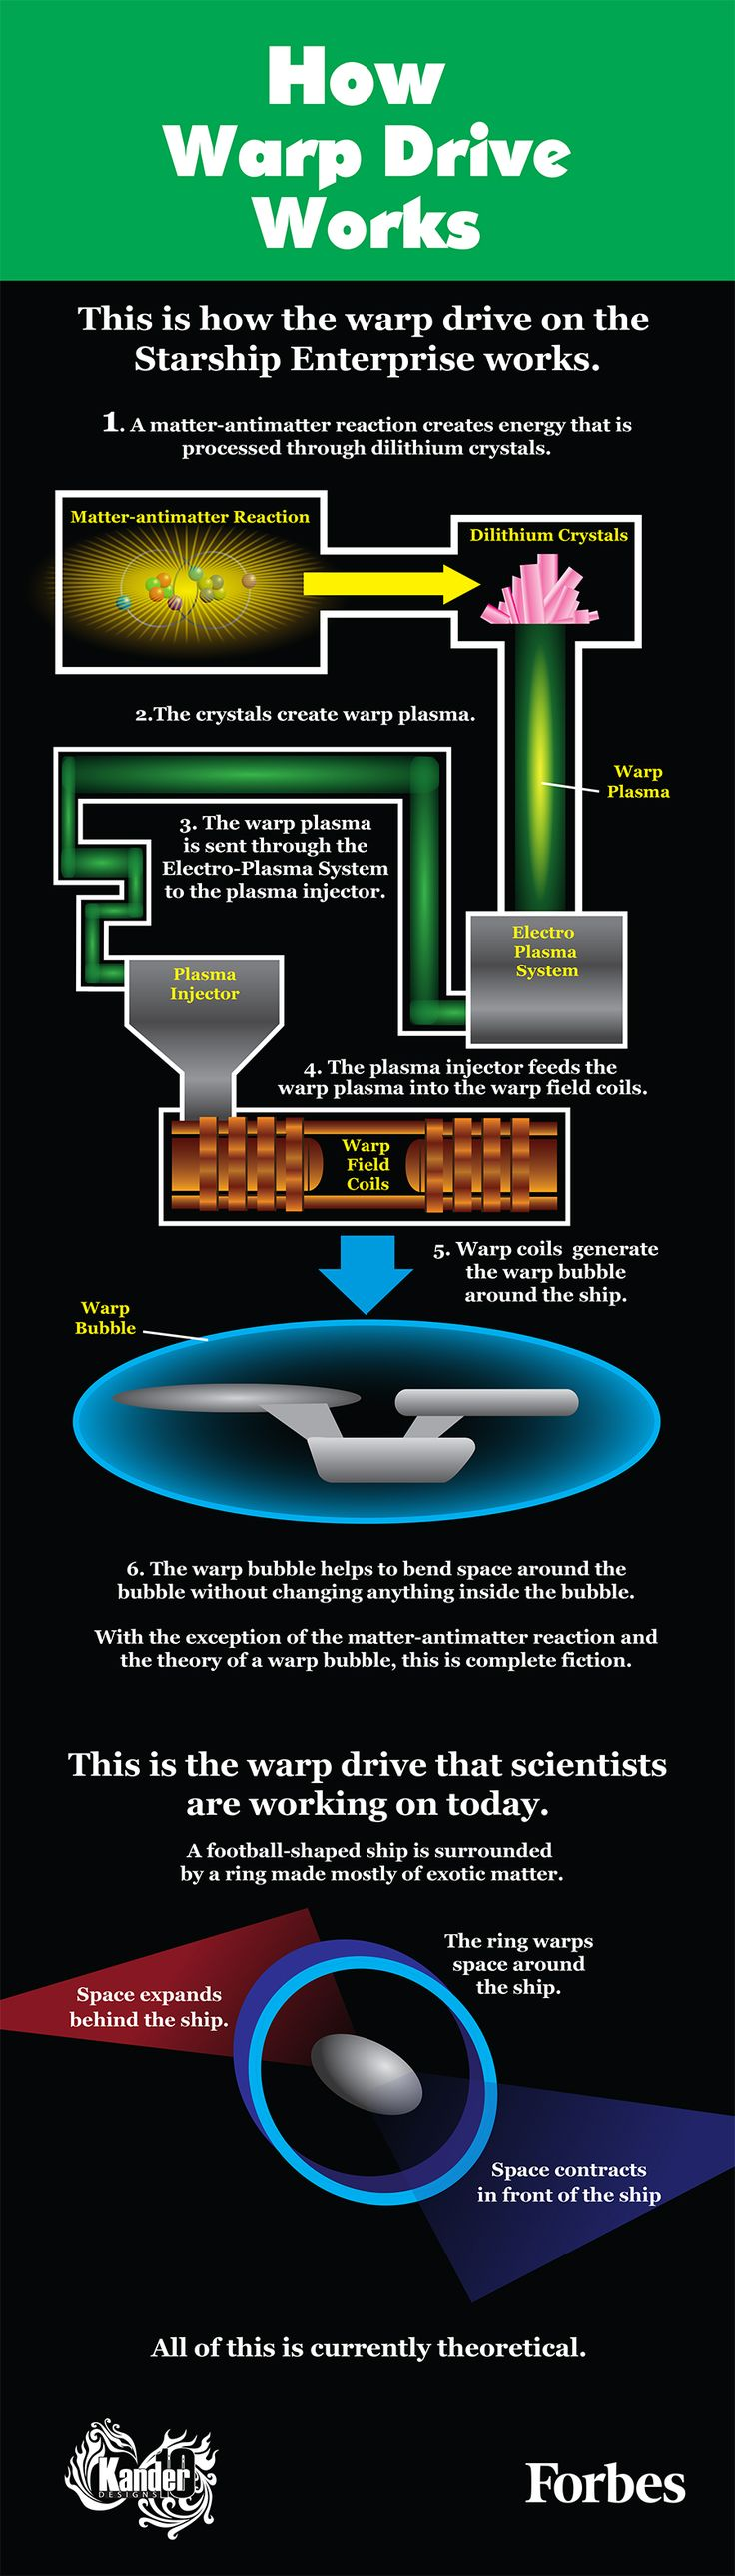 This is how the warp drive on Star Trek's Enterprise compares to what scientists are working on today.